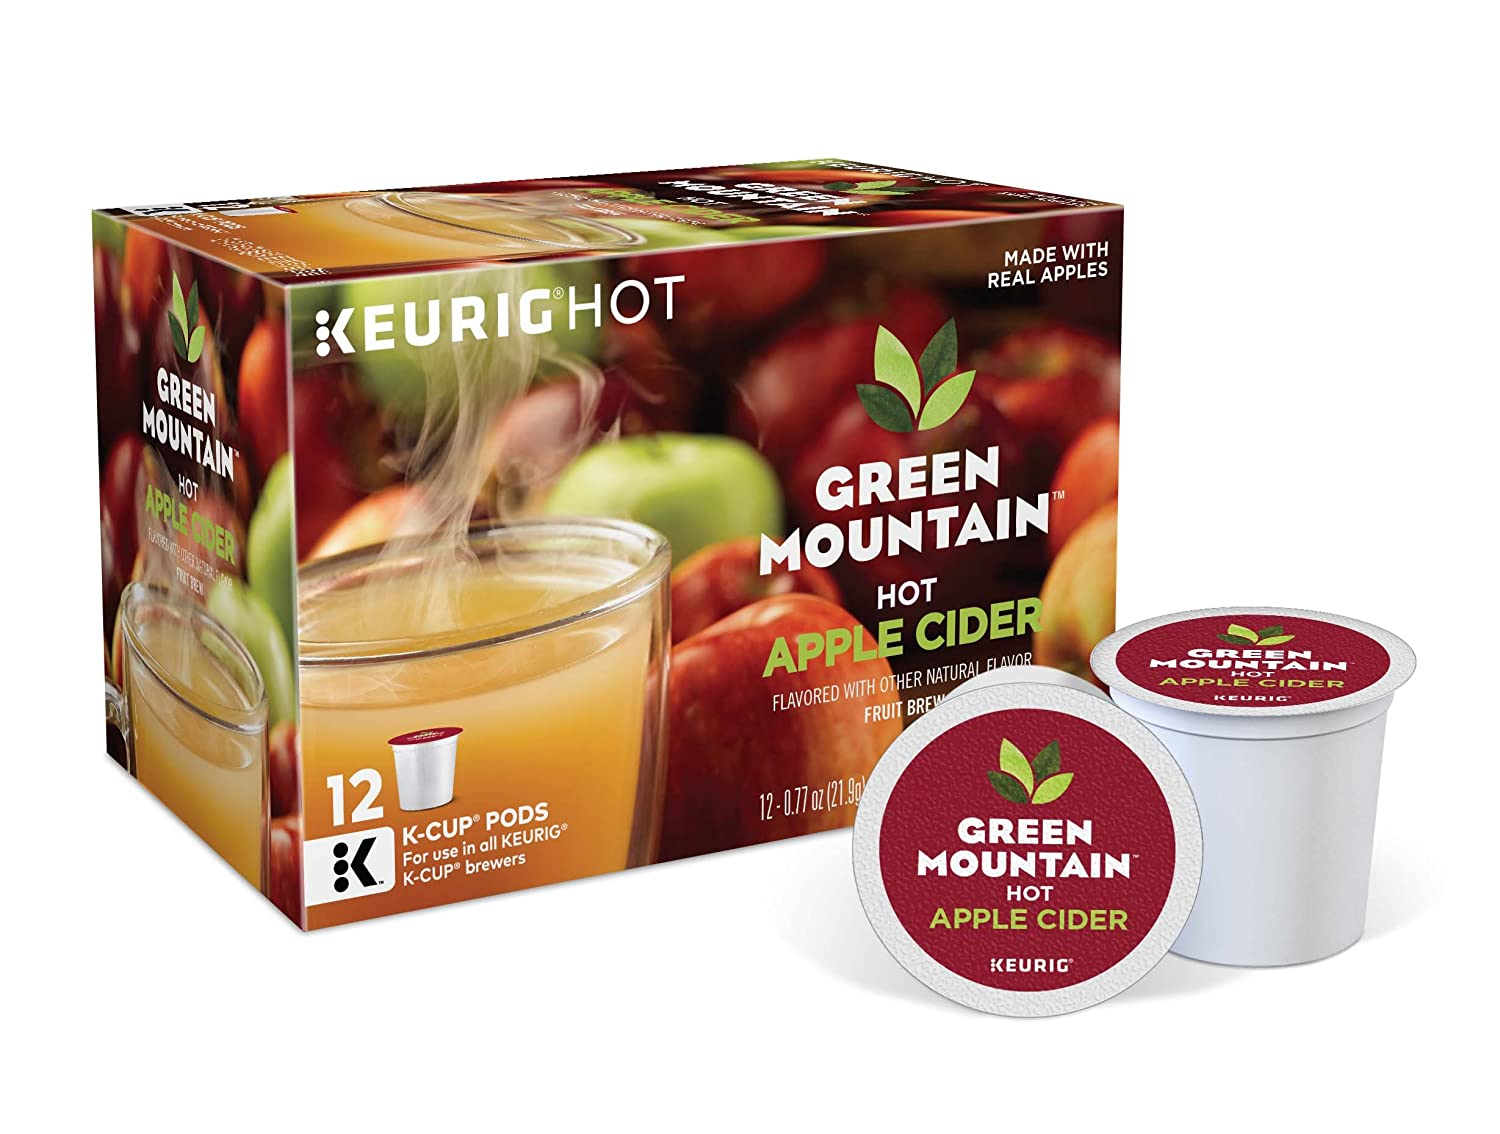 Green Mountain Nautrals Hot Apple Cider, Keurig Single-Serve K-Cup Pods, 72 Count